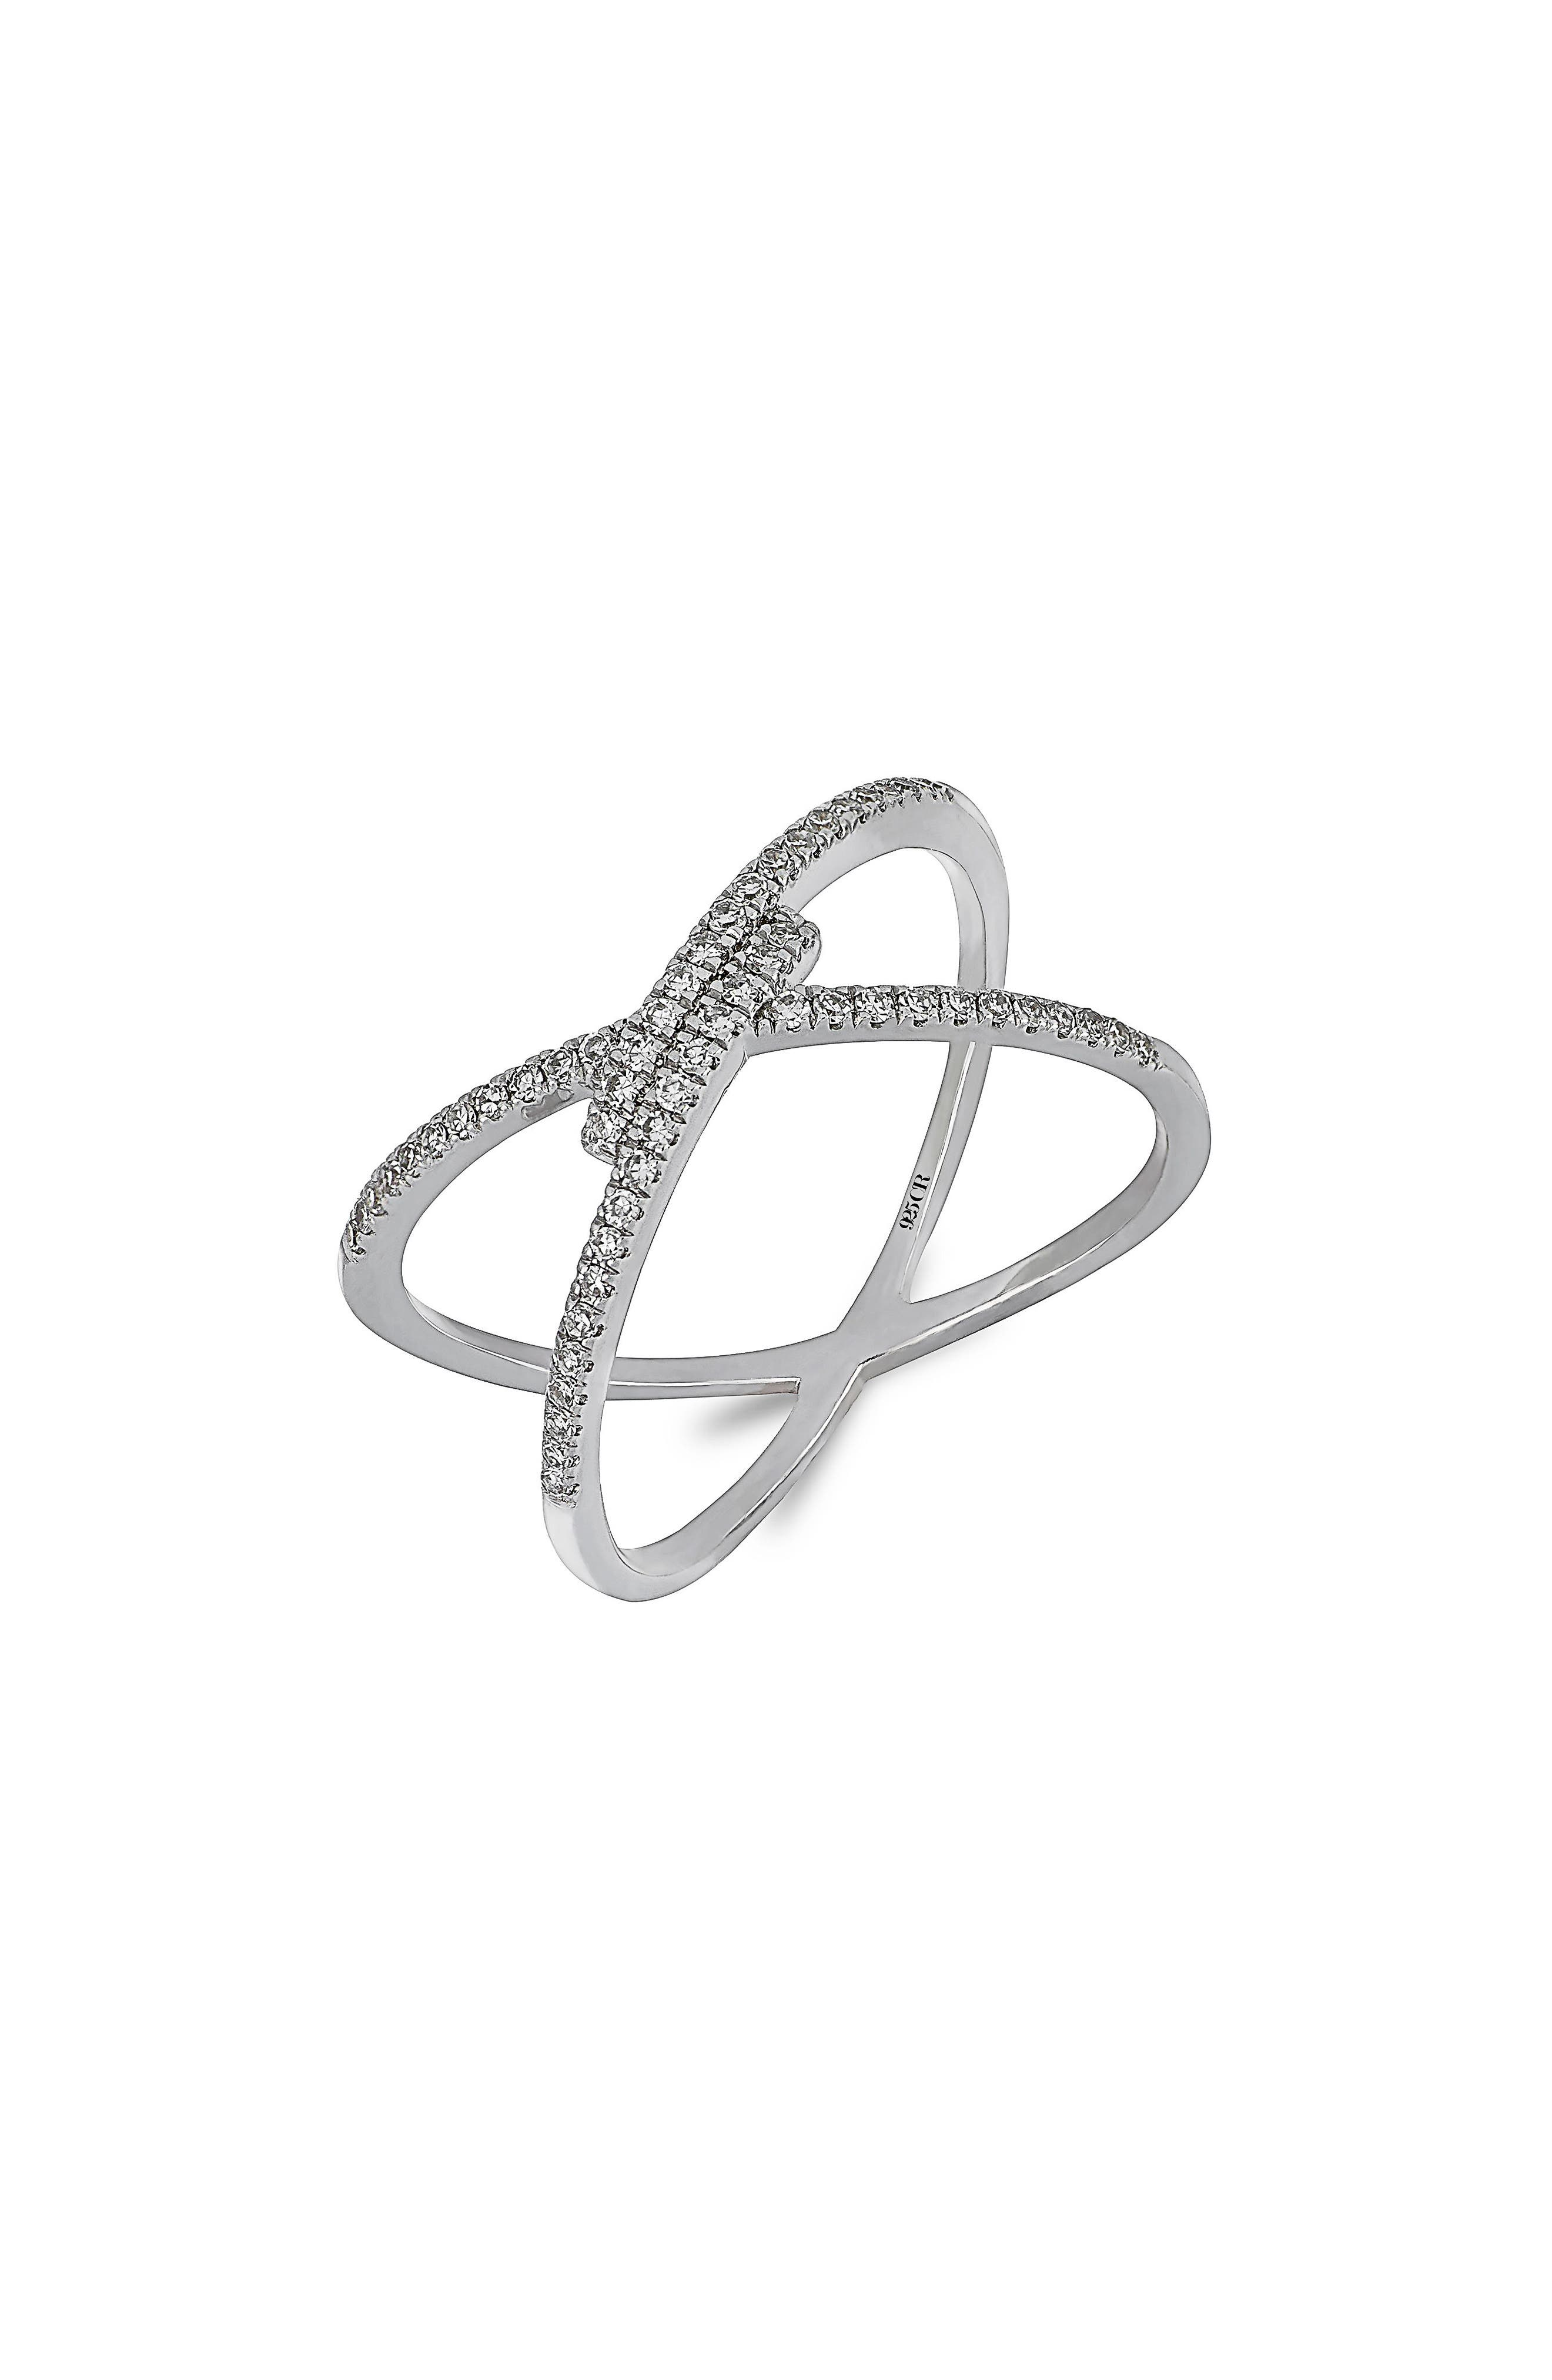 Alternate Image 1 Selected - Carrière Crossover Diamond Ring (Nordstrom Exclusive)